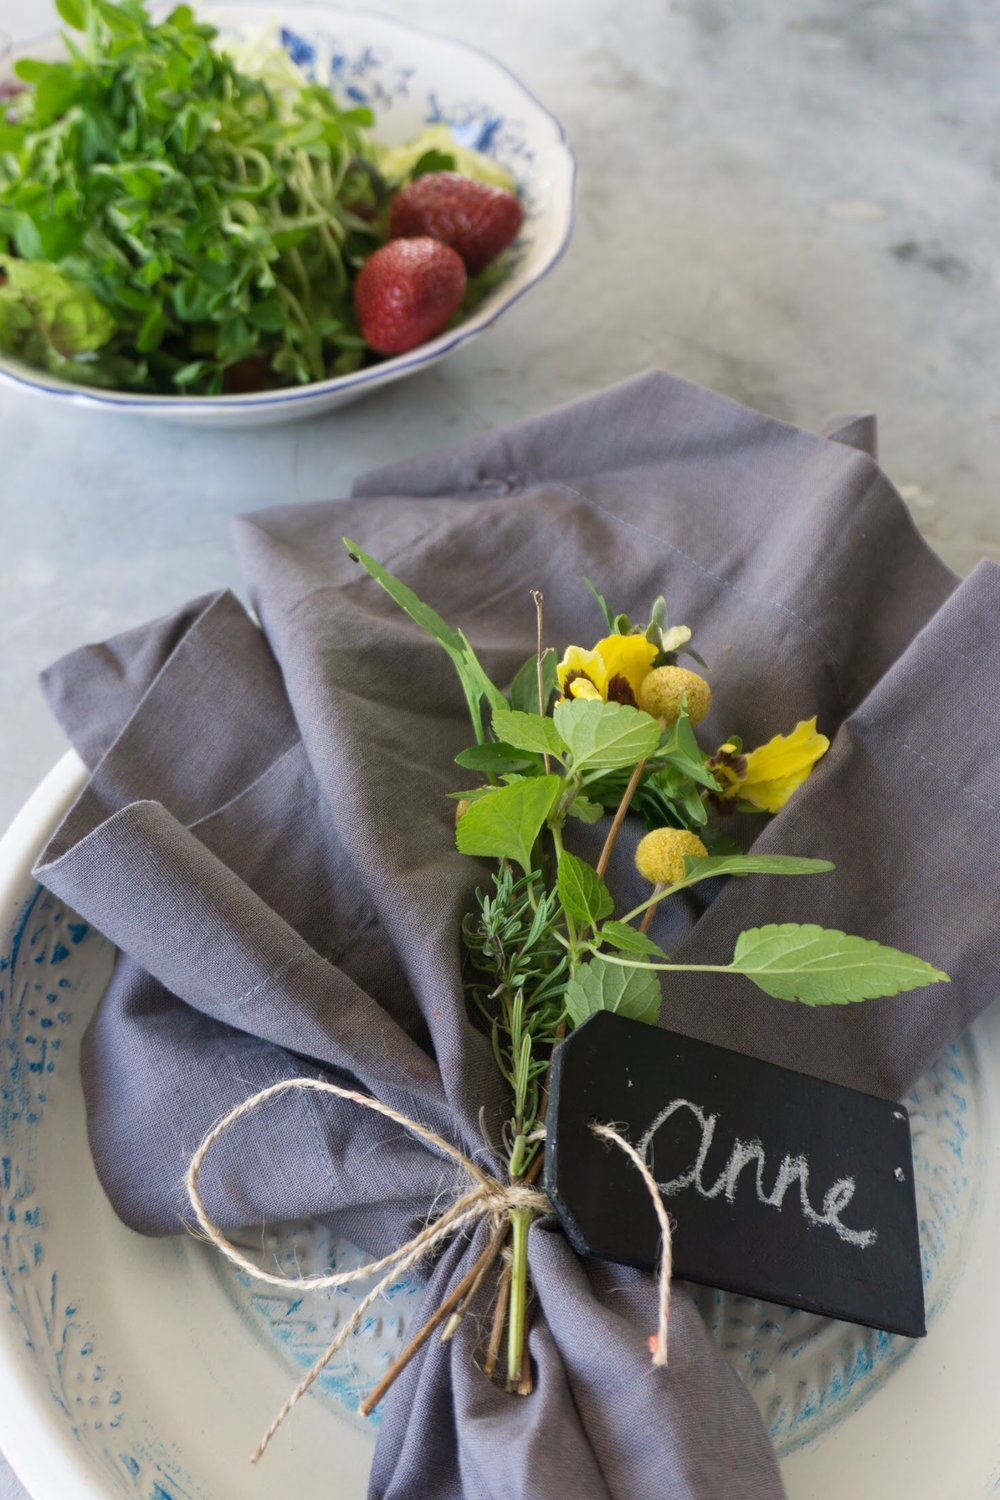 Tie your napkins with twine, herbs and pretty flowers. Personalise each one with a name tag. Chalk board name tags from Hot Dollar or craft stores.